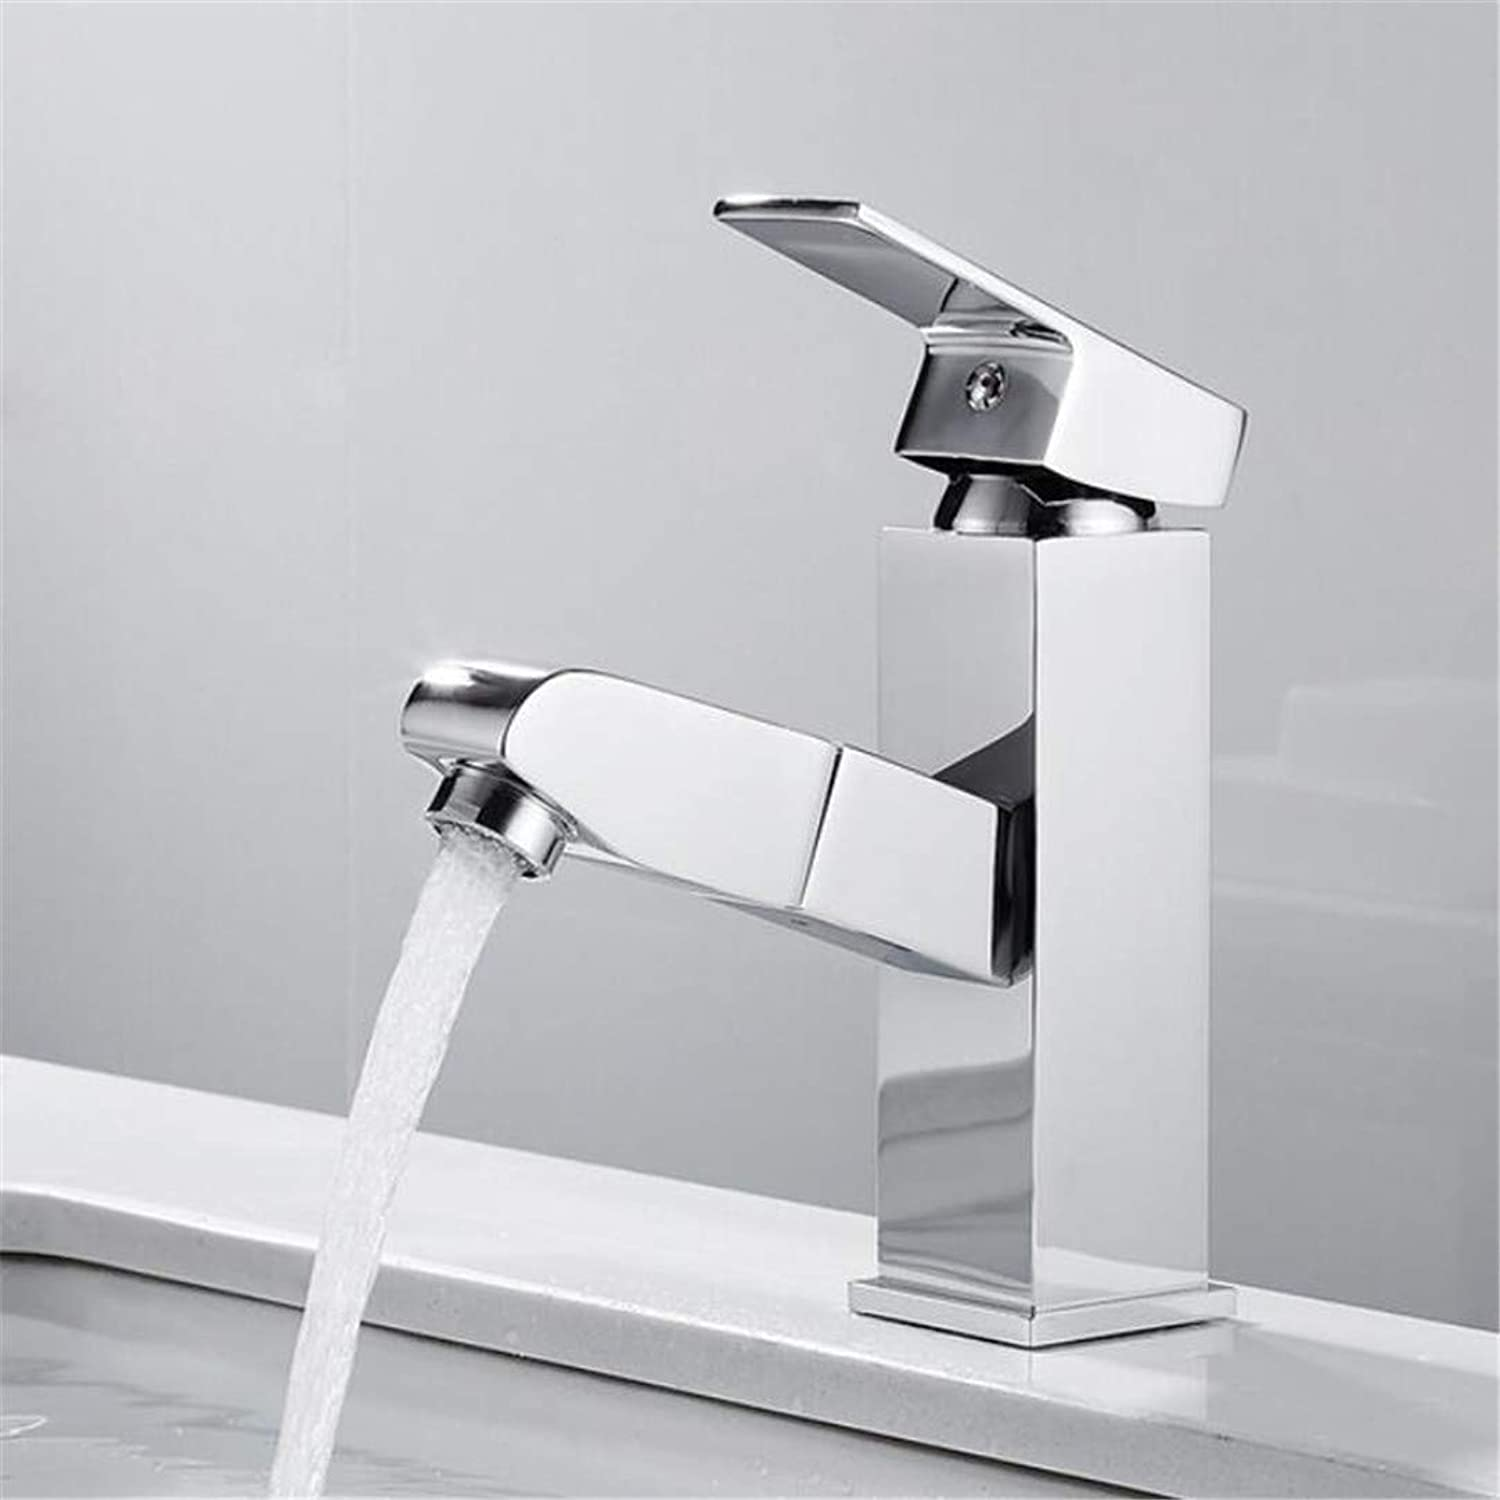 Faucet Washbasin Mixer Sink Faucet Chrome Black Single Handle Hot and Cold Water Crane Vessel Sink Mixer Tap